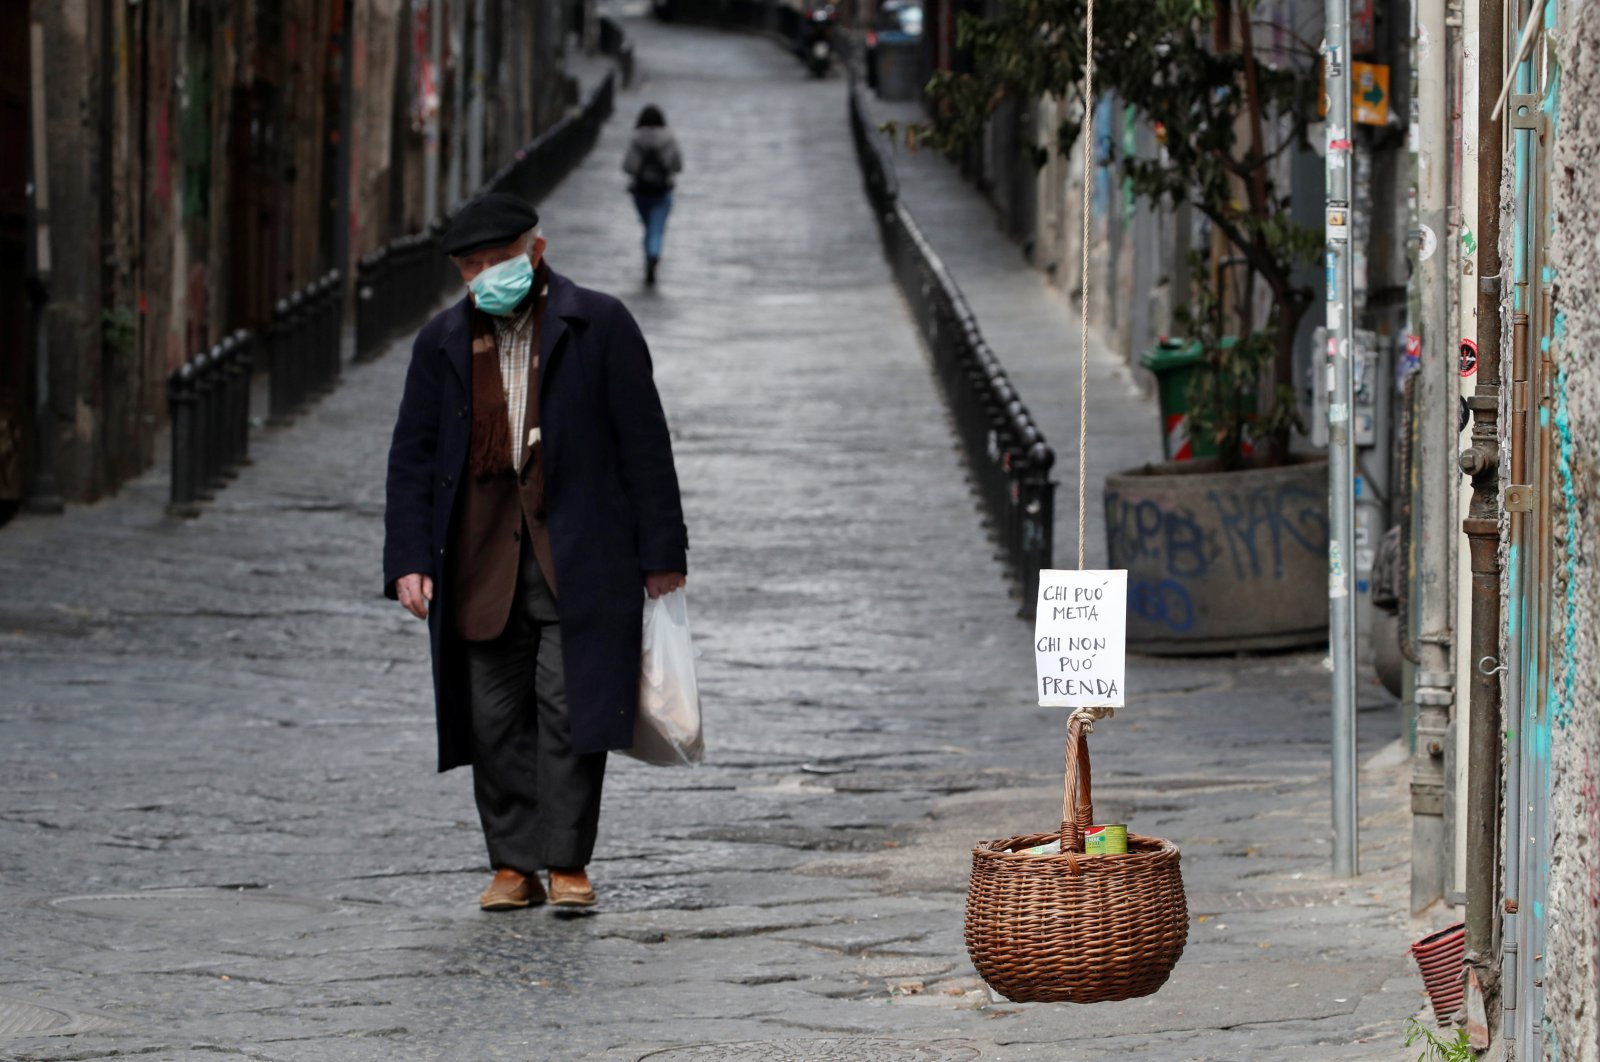 A basket hung up so people can donate or take for free food is seen, as Italy struggles to contain the spread of coronavirus disease (COVID-19), in Naples, Italy March 30, 2020.(Reuters Photo)